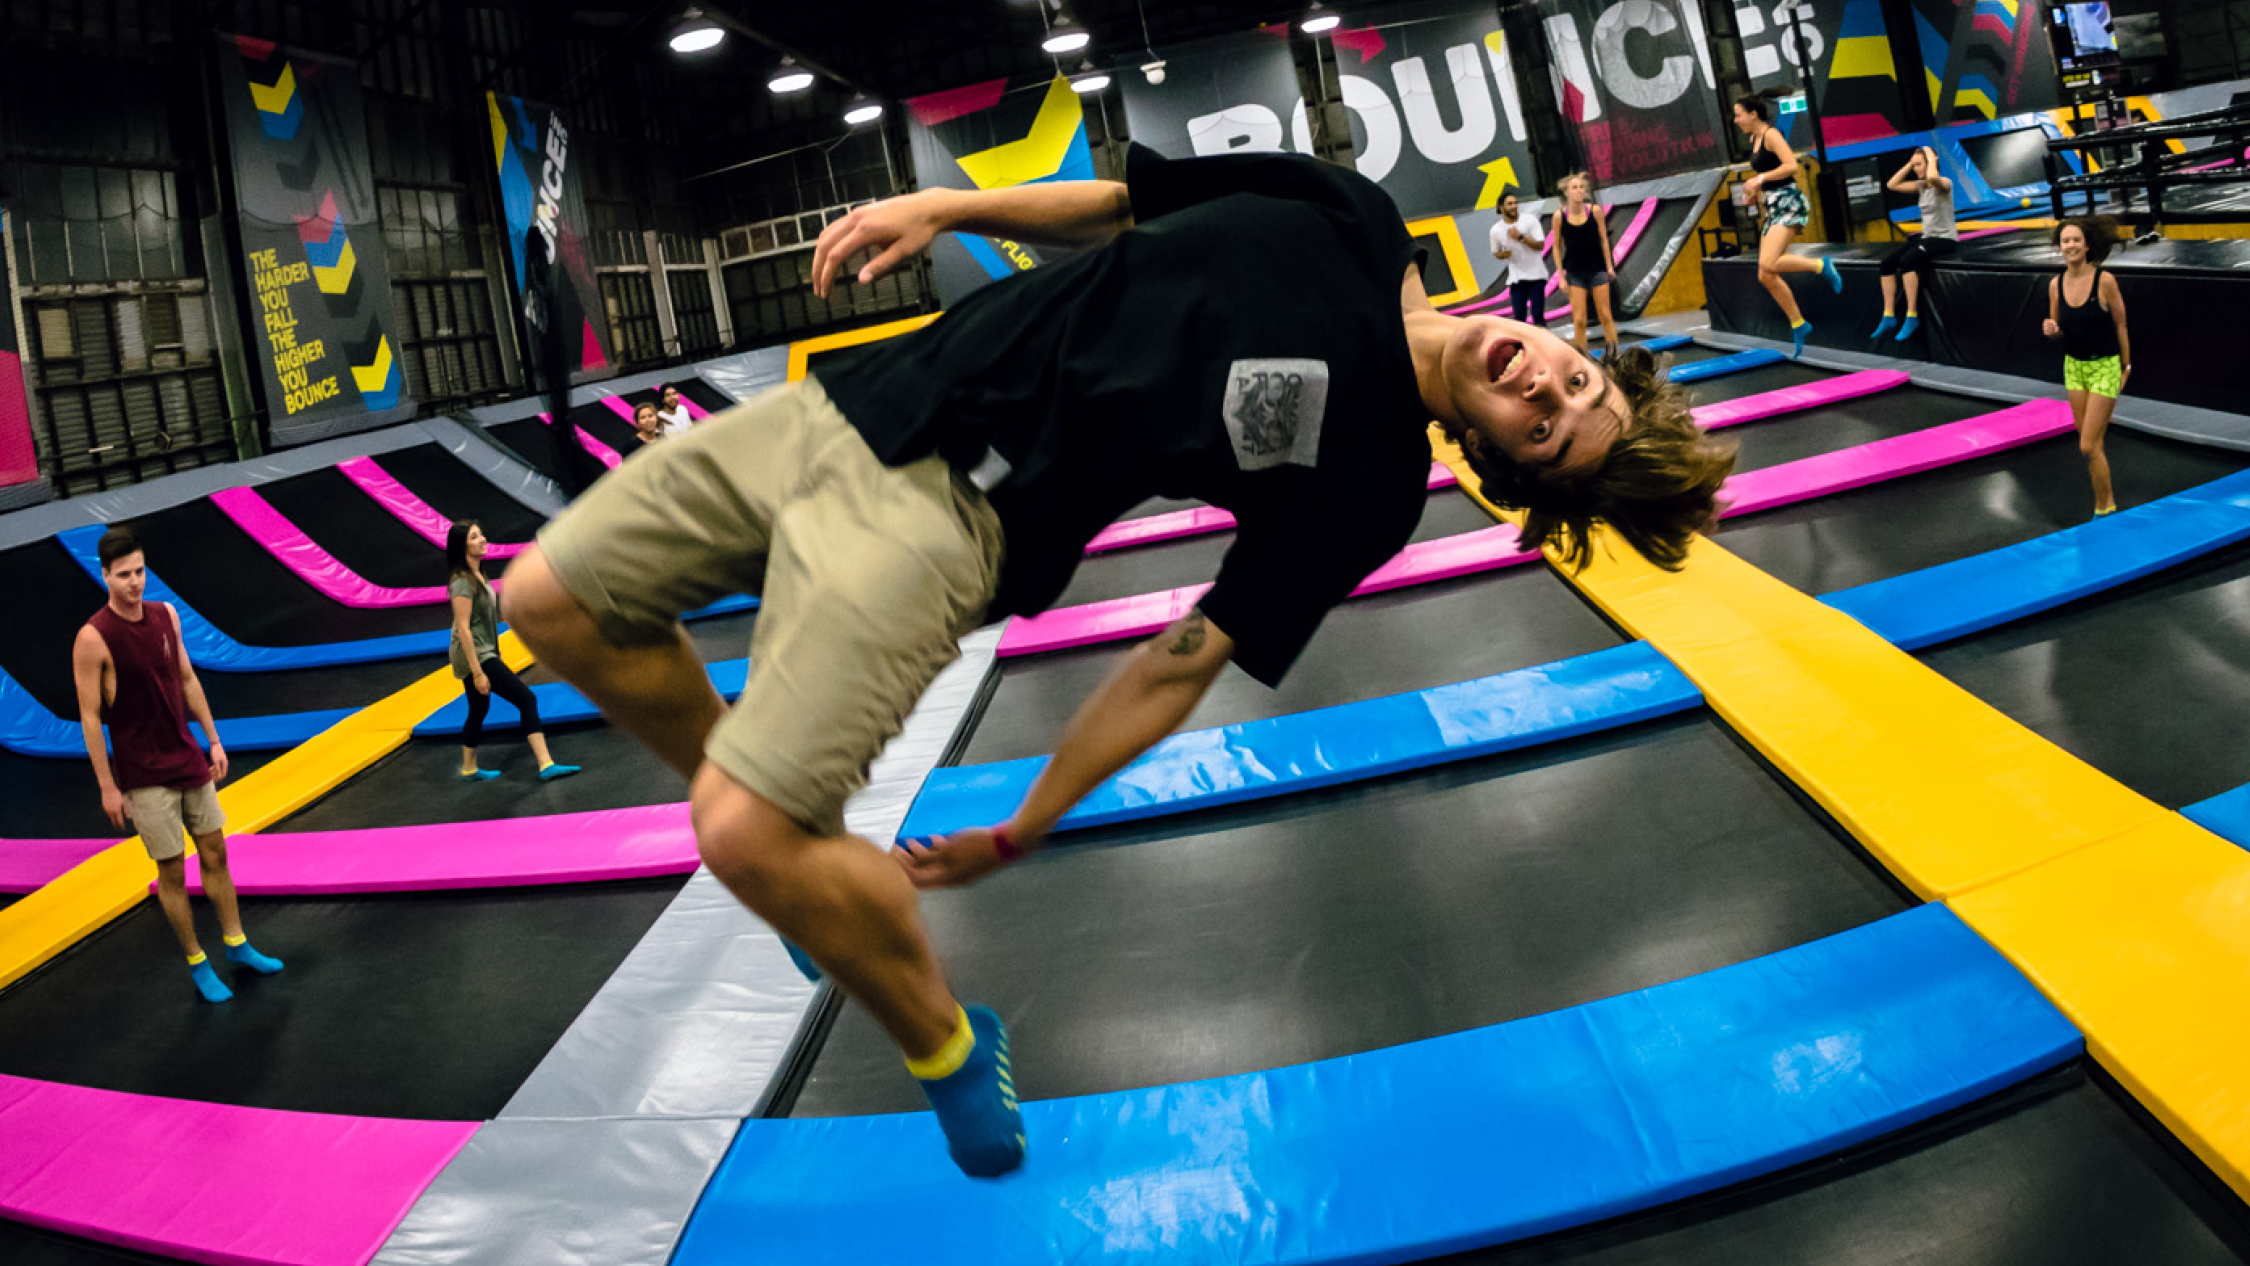 Bounce Inc is letting you double your fun this summer